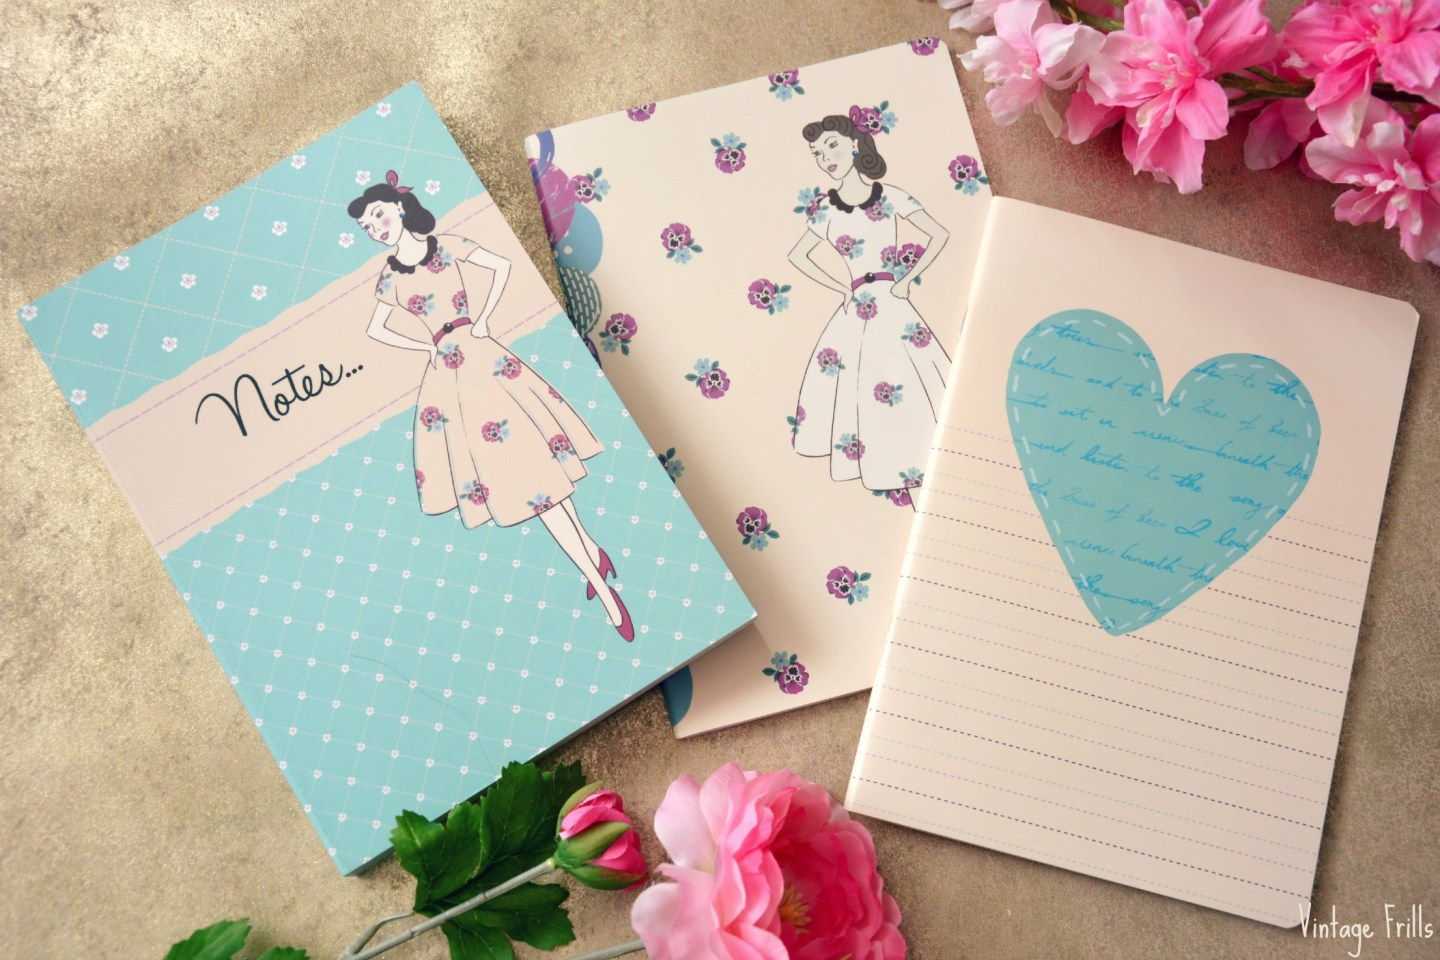 Wilkos Vintage Notebooks